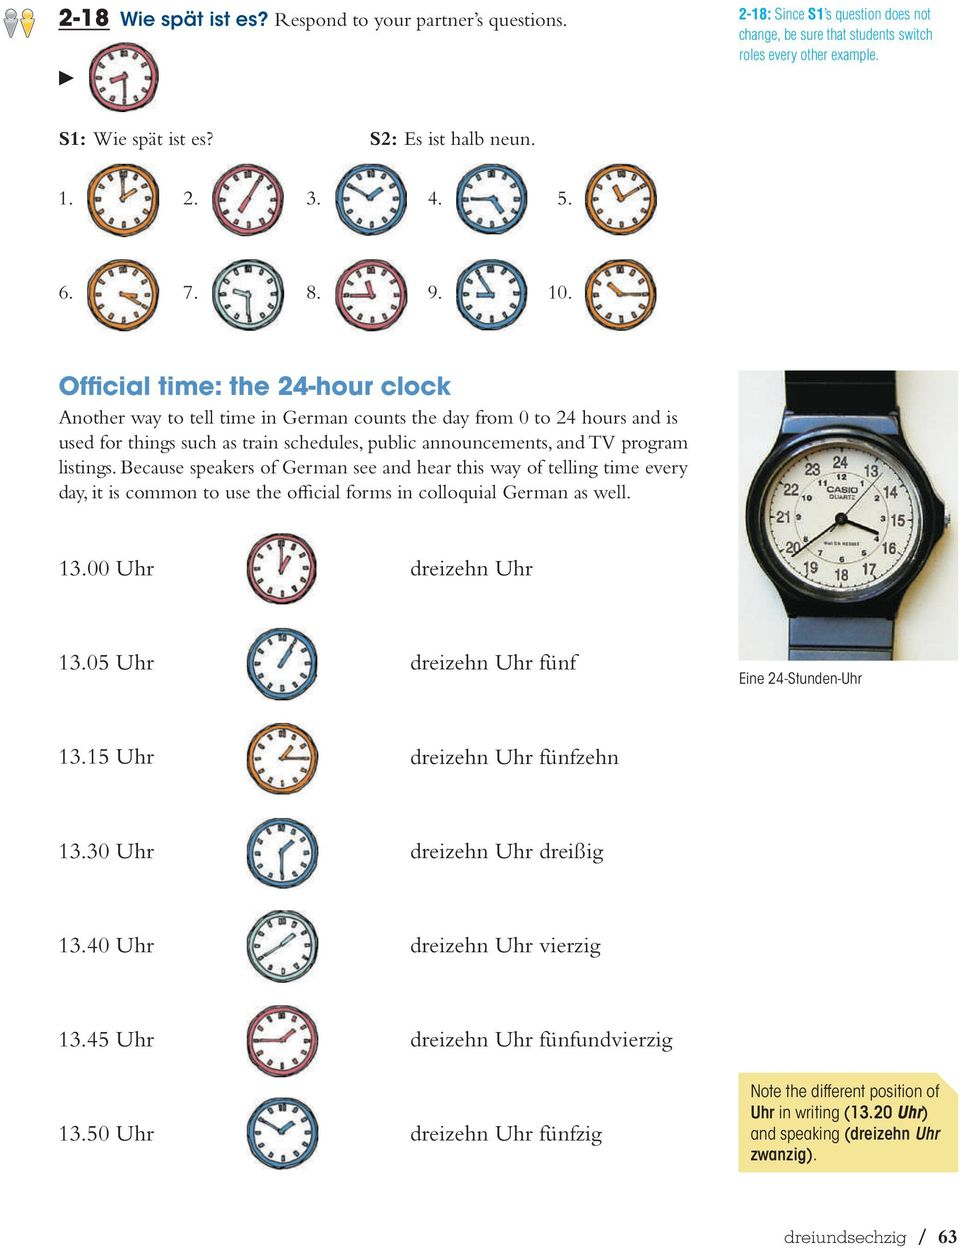 Official time: the 24-hour clock Another way to tell time in German counts the day from 0 to 24 hours and is used for things such as train schedules, public announcements, and TV program listings.